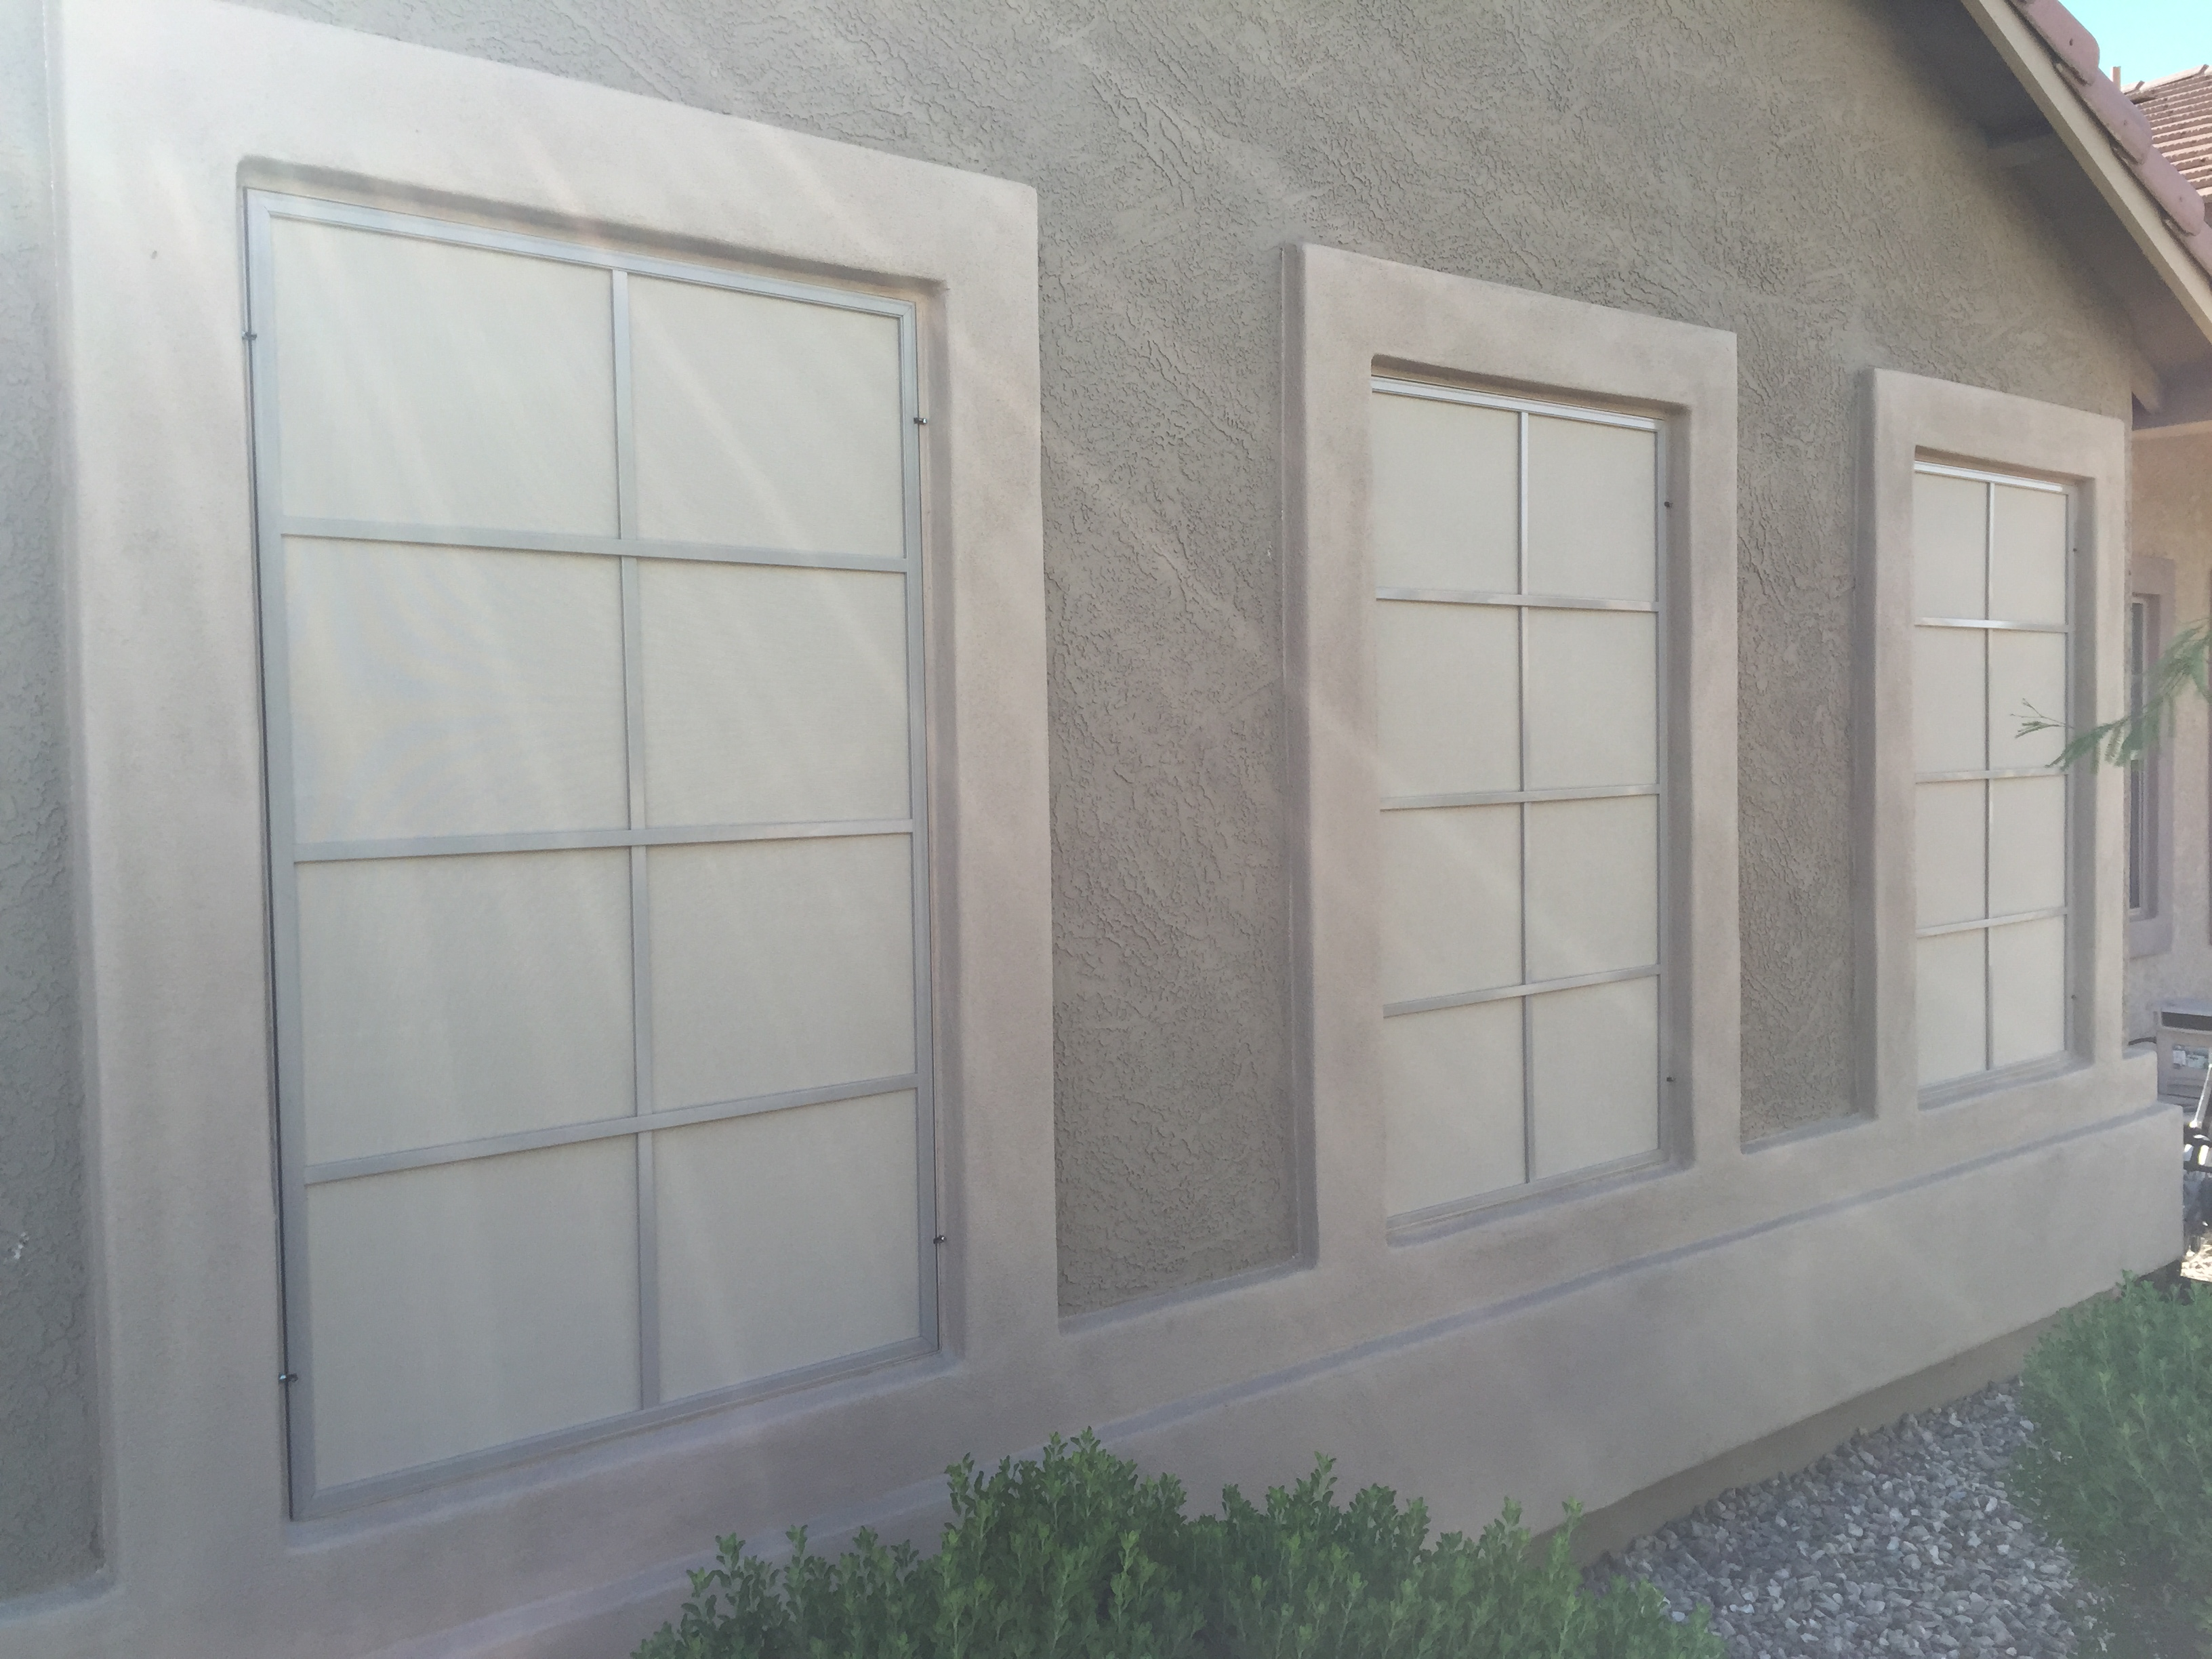 Solar screens in Buckeye, Arizona